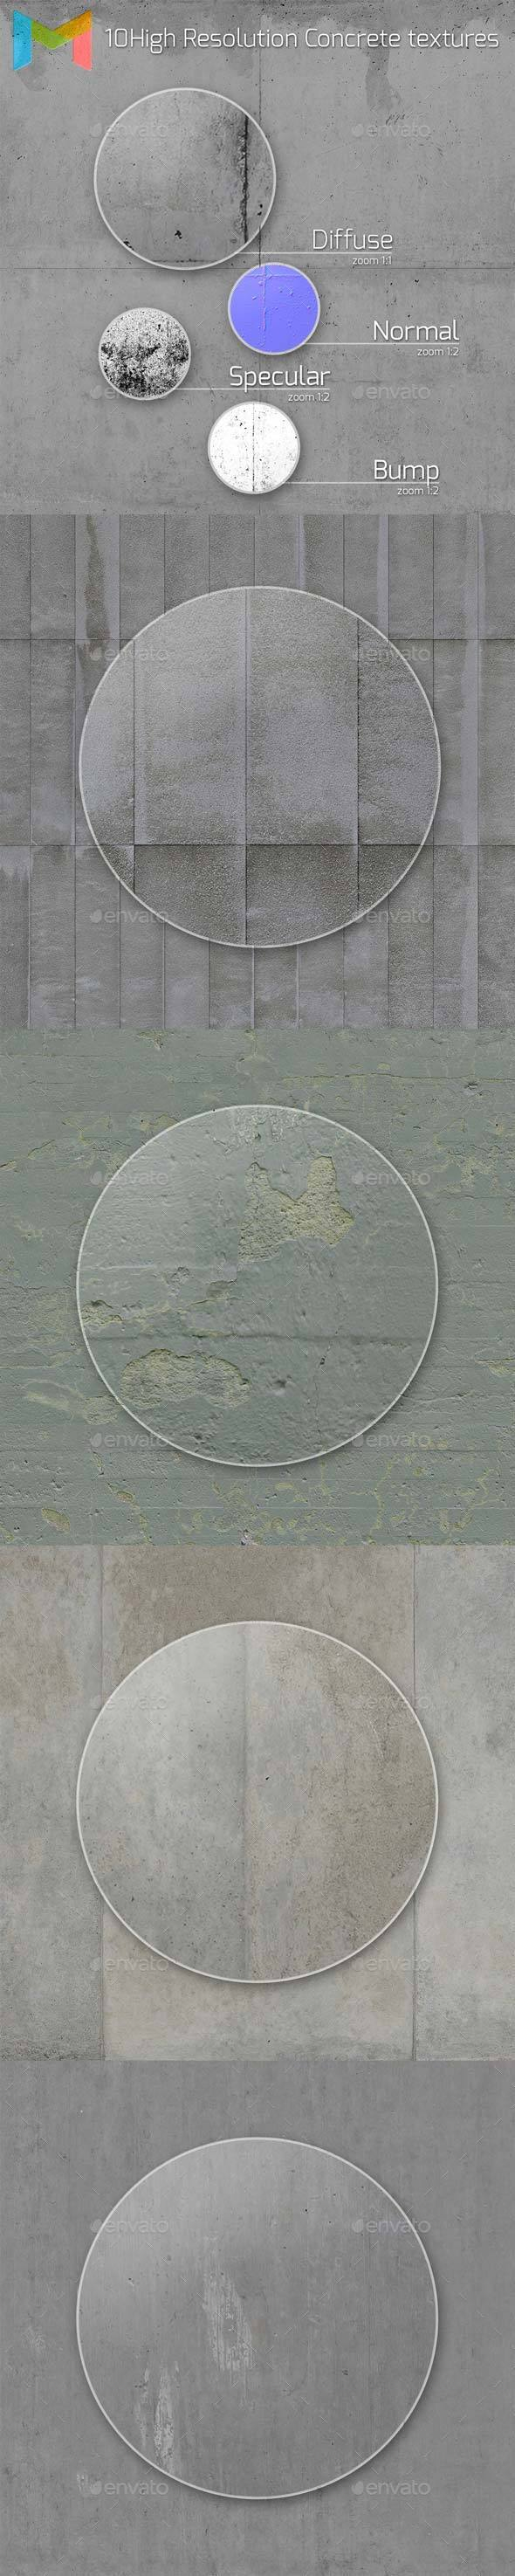 10 HQ Concrete textures - 3DOcean Item for Sale